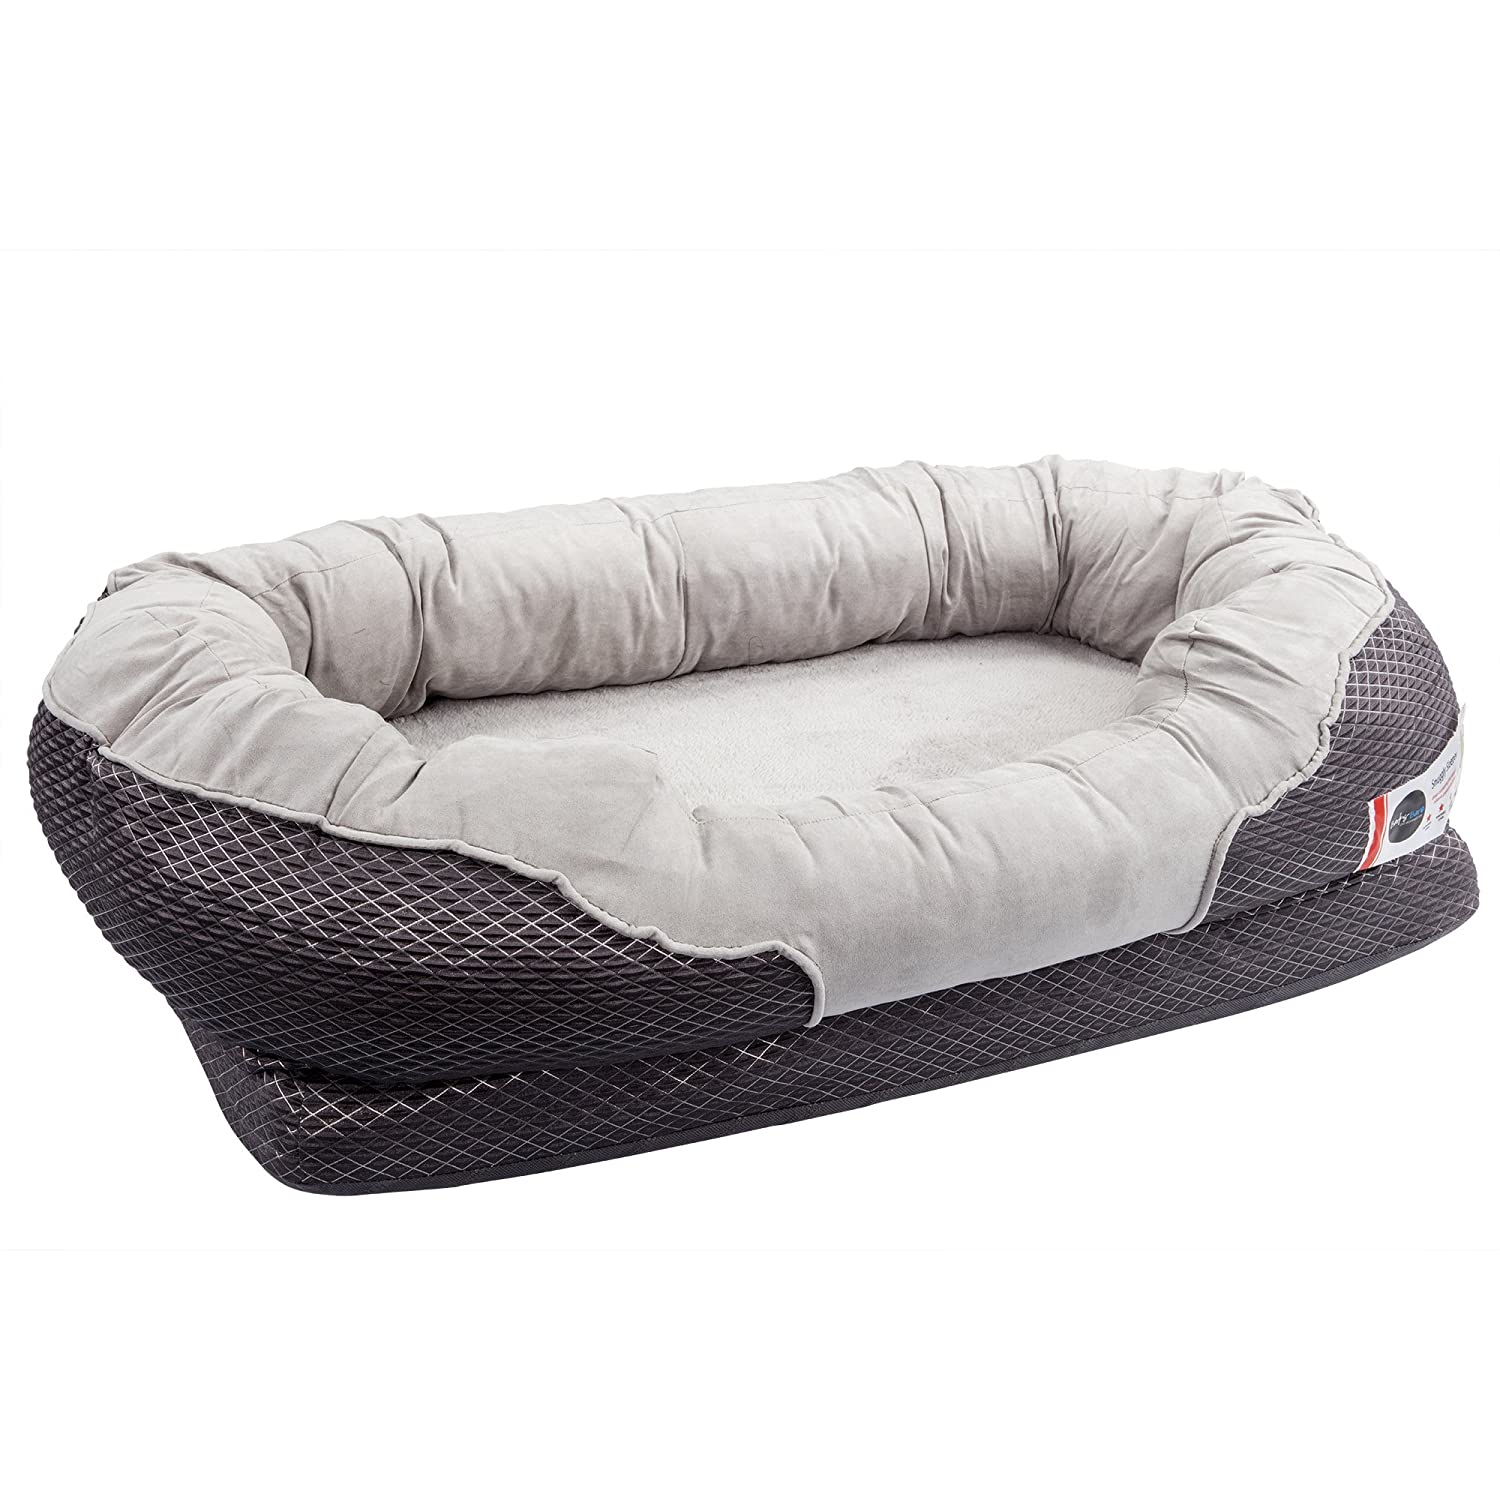 Amazon Com Barksbar Large Gray Orthopedic Dog Bed 40 X 30 Inches